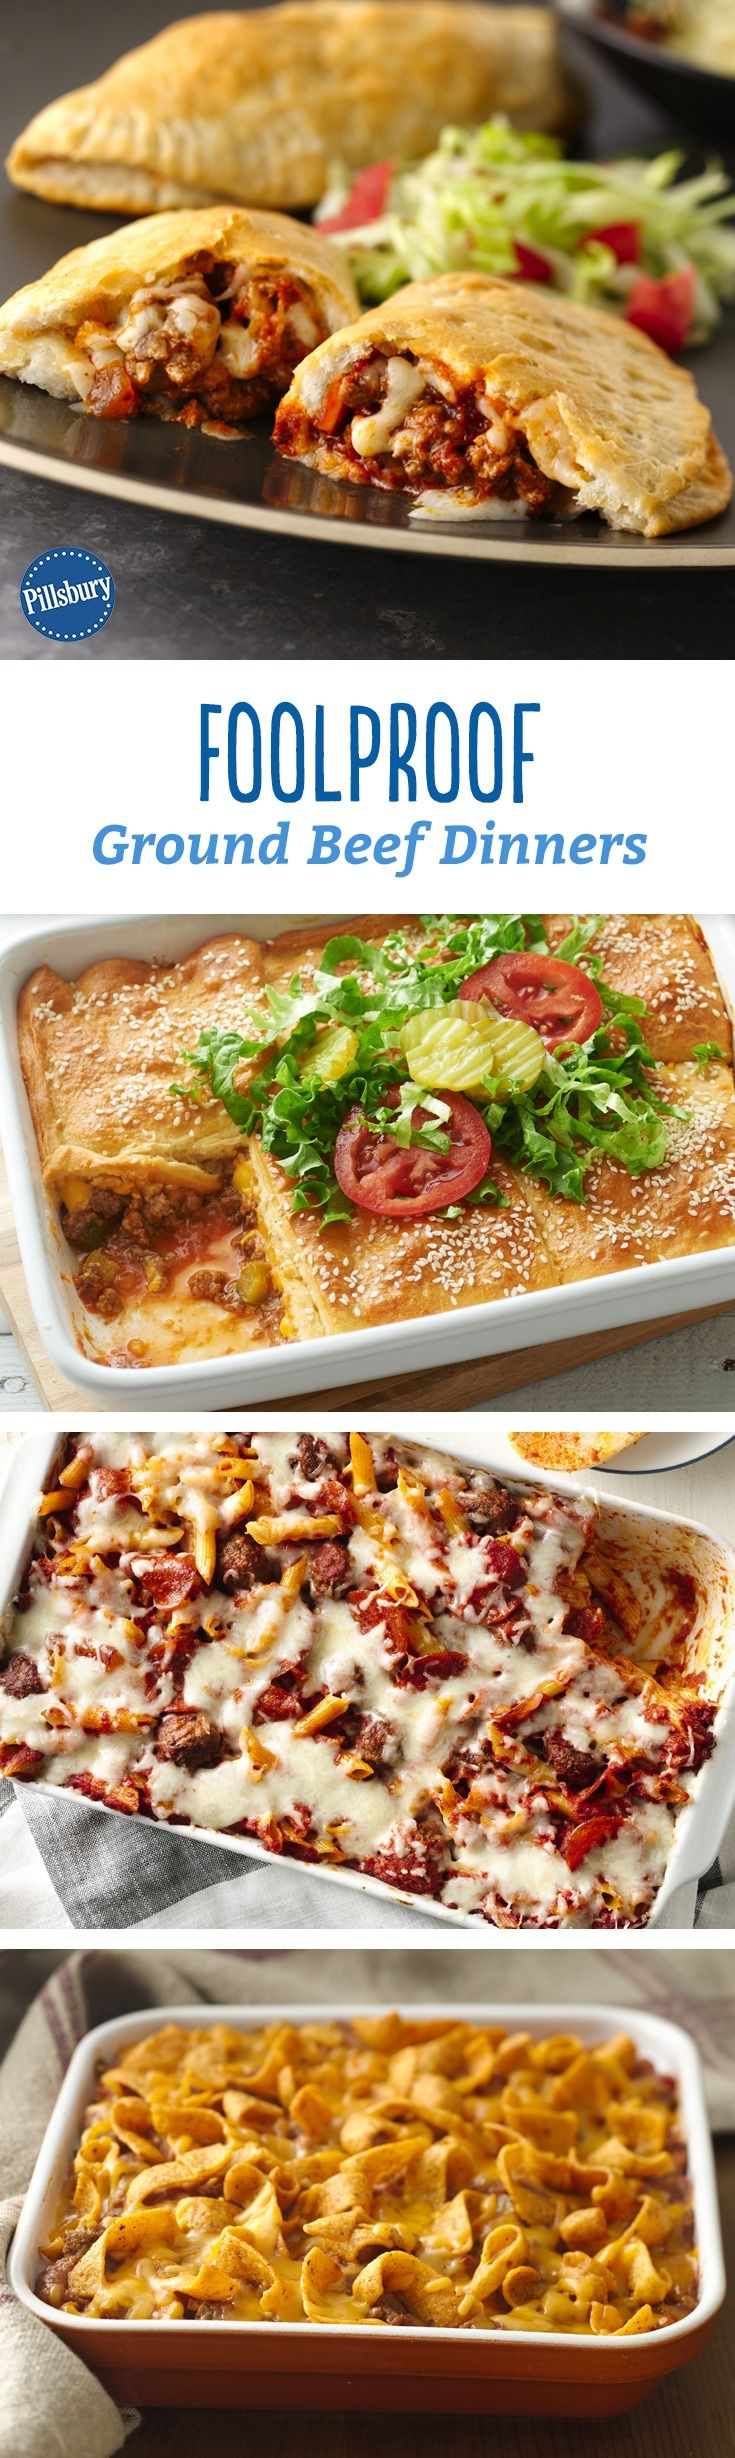 We've stamped our seal of approval on these 12 ground beef dinners! The criteria? They have to be fast, family-friendly and ones you'll want to make again and again.